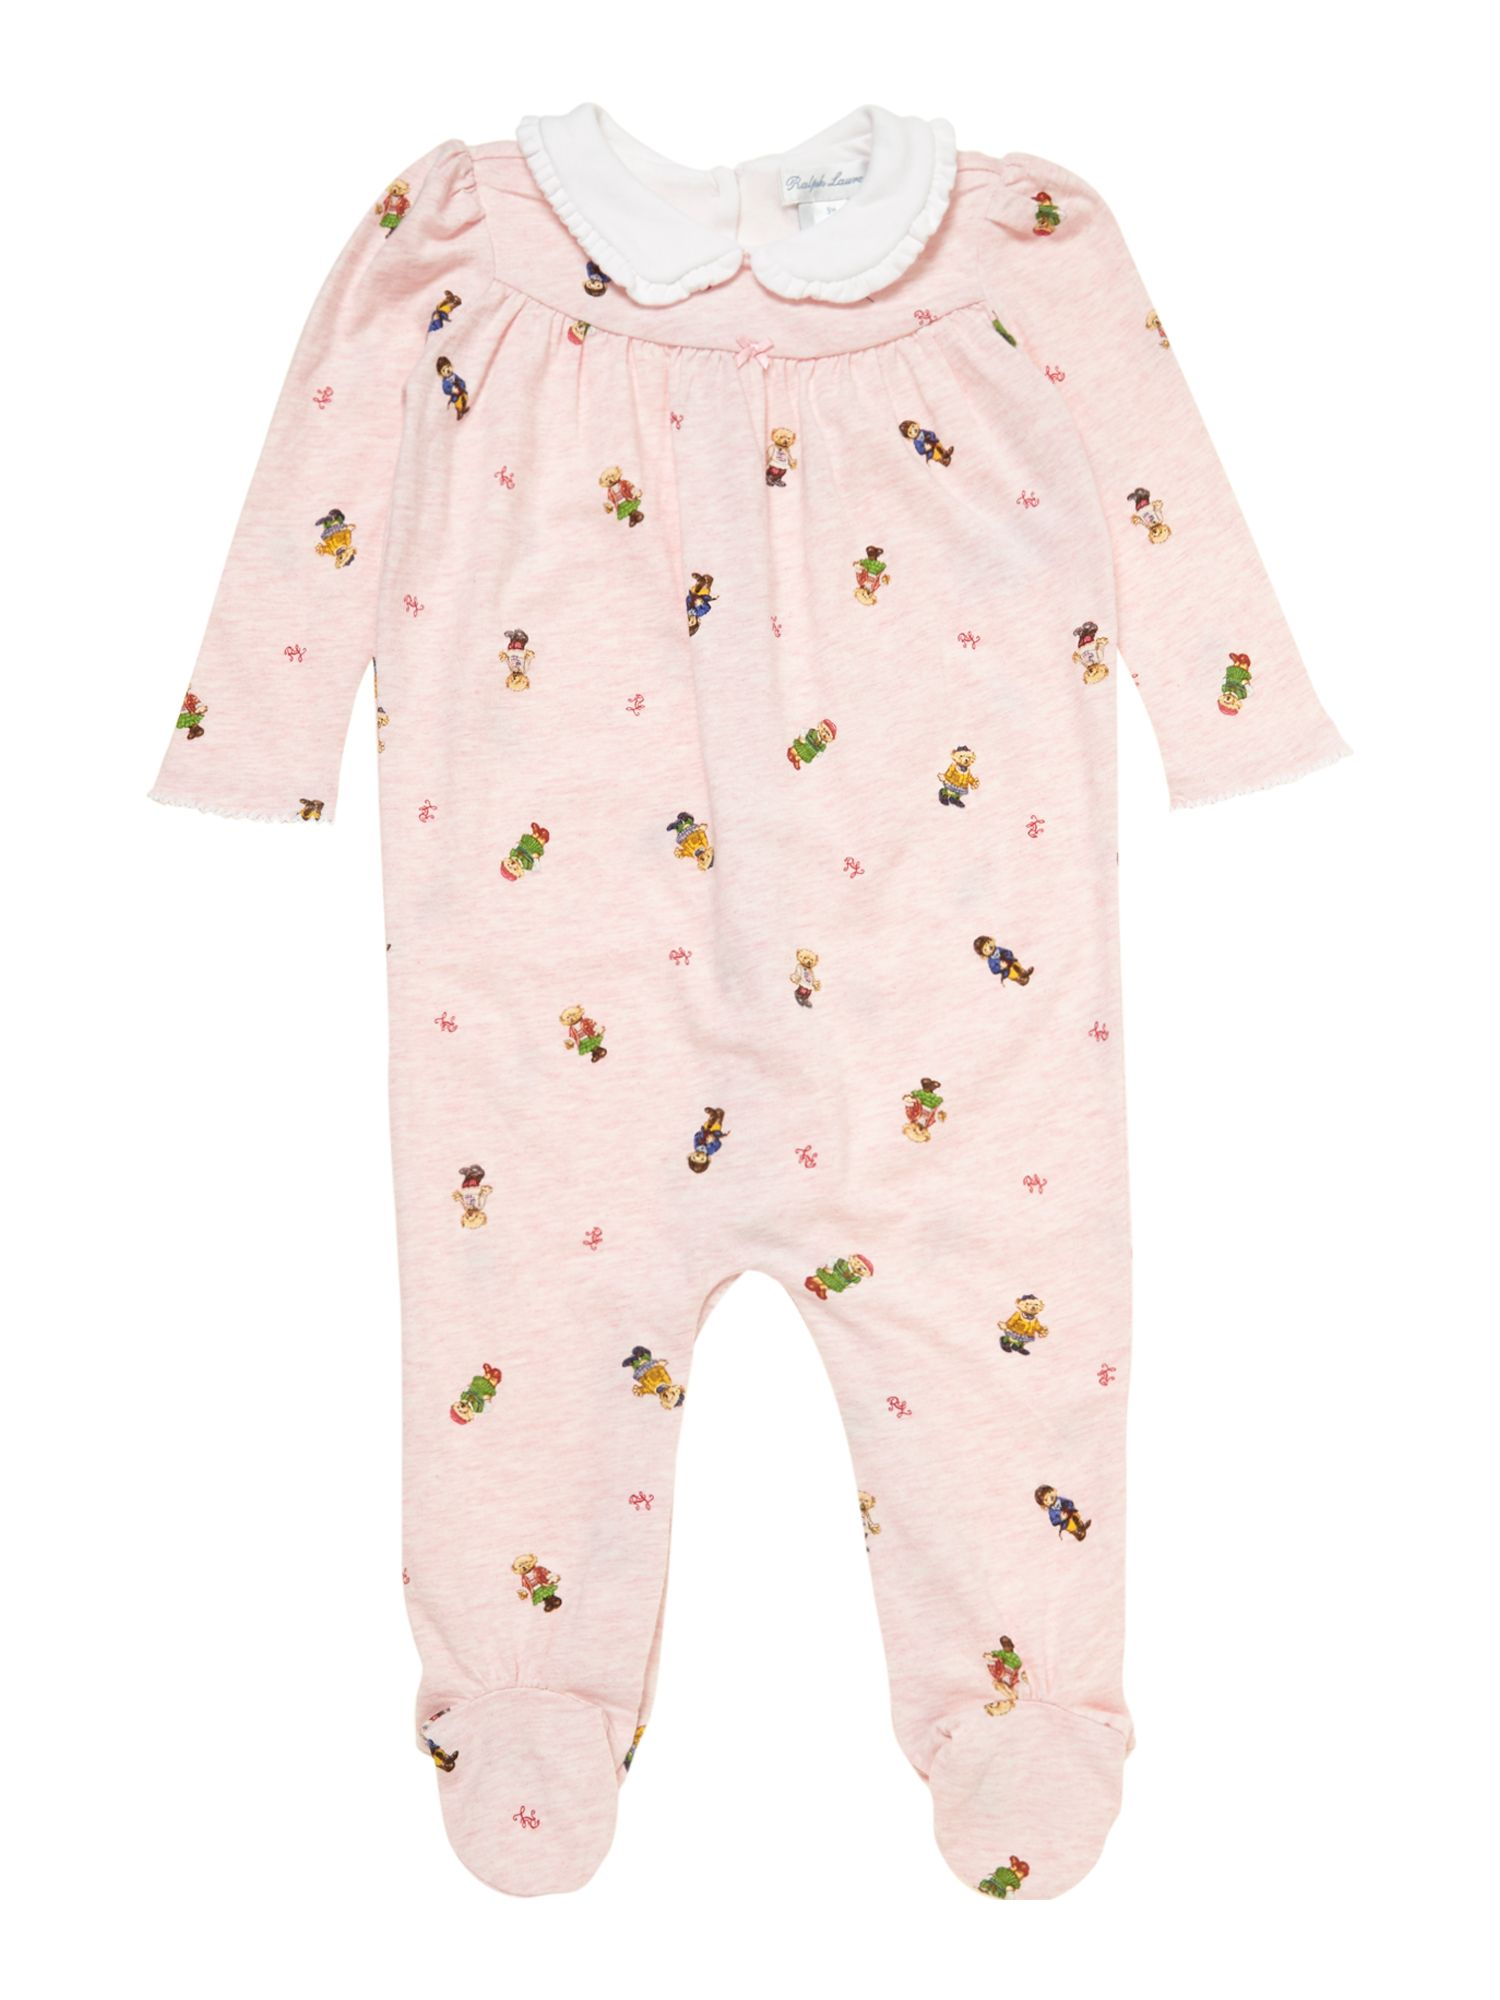 Babys teddy print all-in-one